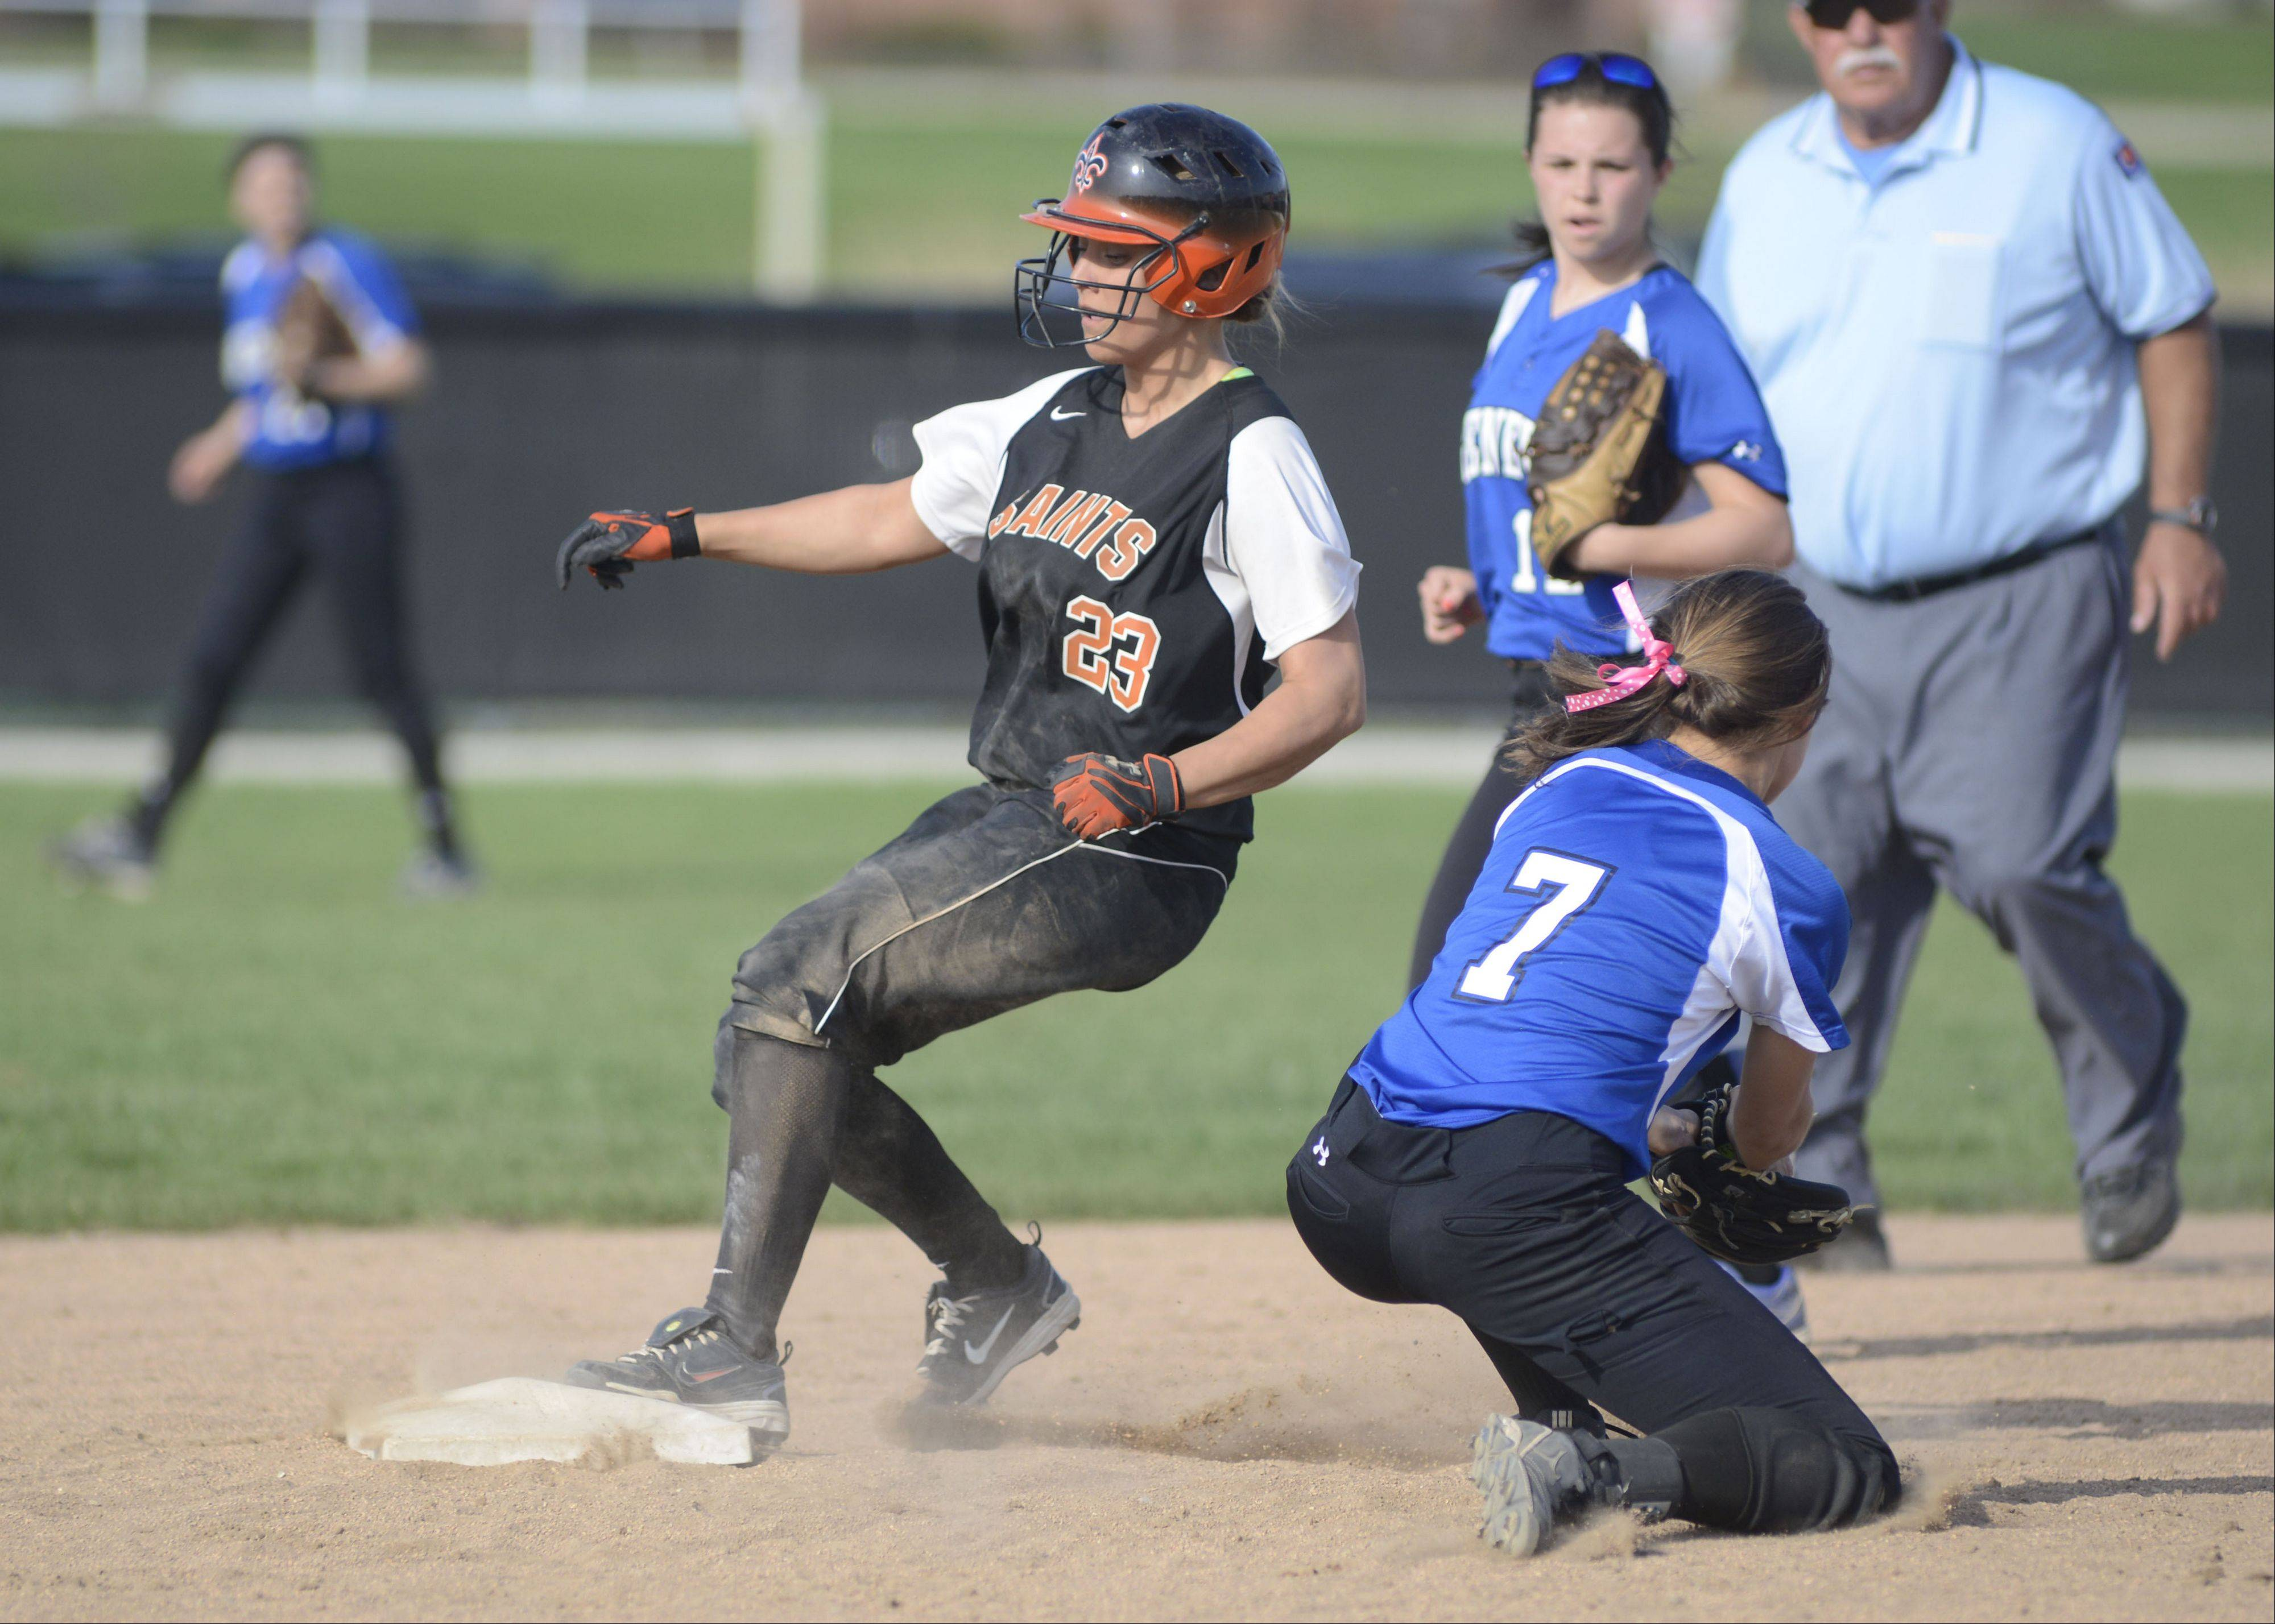 St. Charles East's Mackenzie Meadows makes it to second base before the ball hits Geneva's Anna Geary's glove in the fourth inning on Tuesday, April 30.